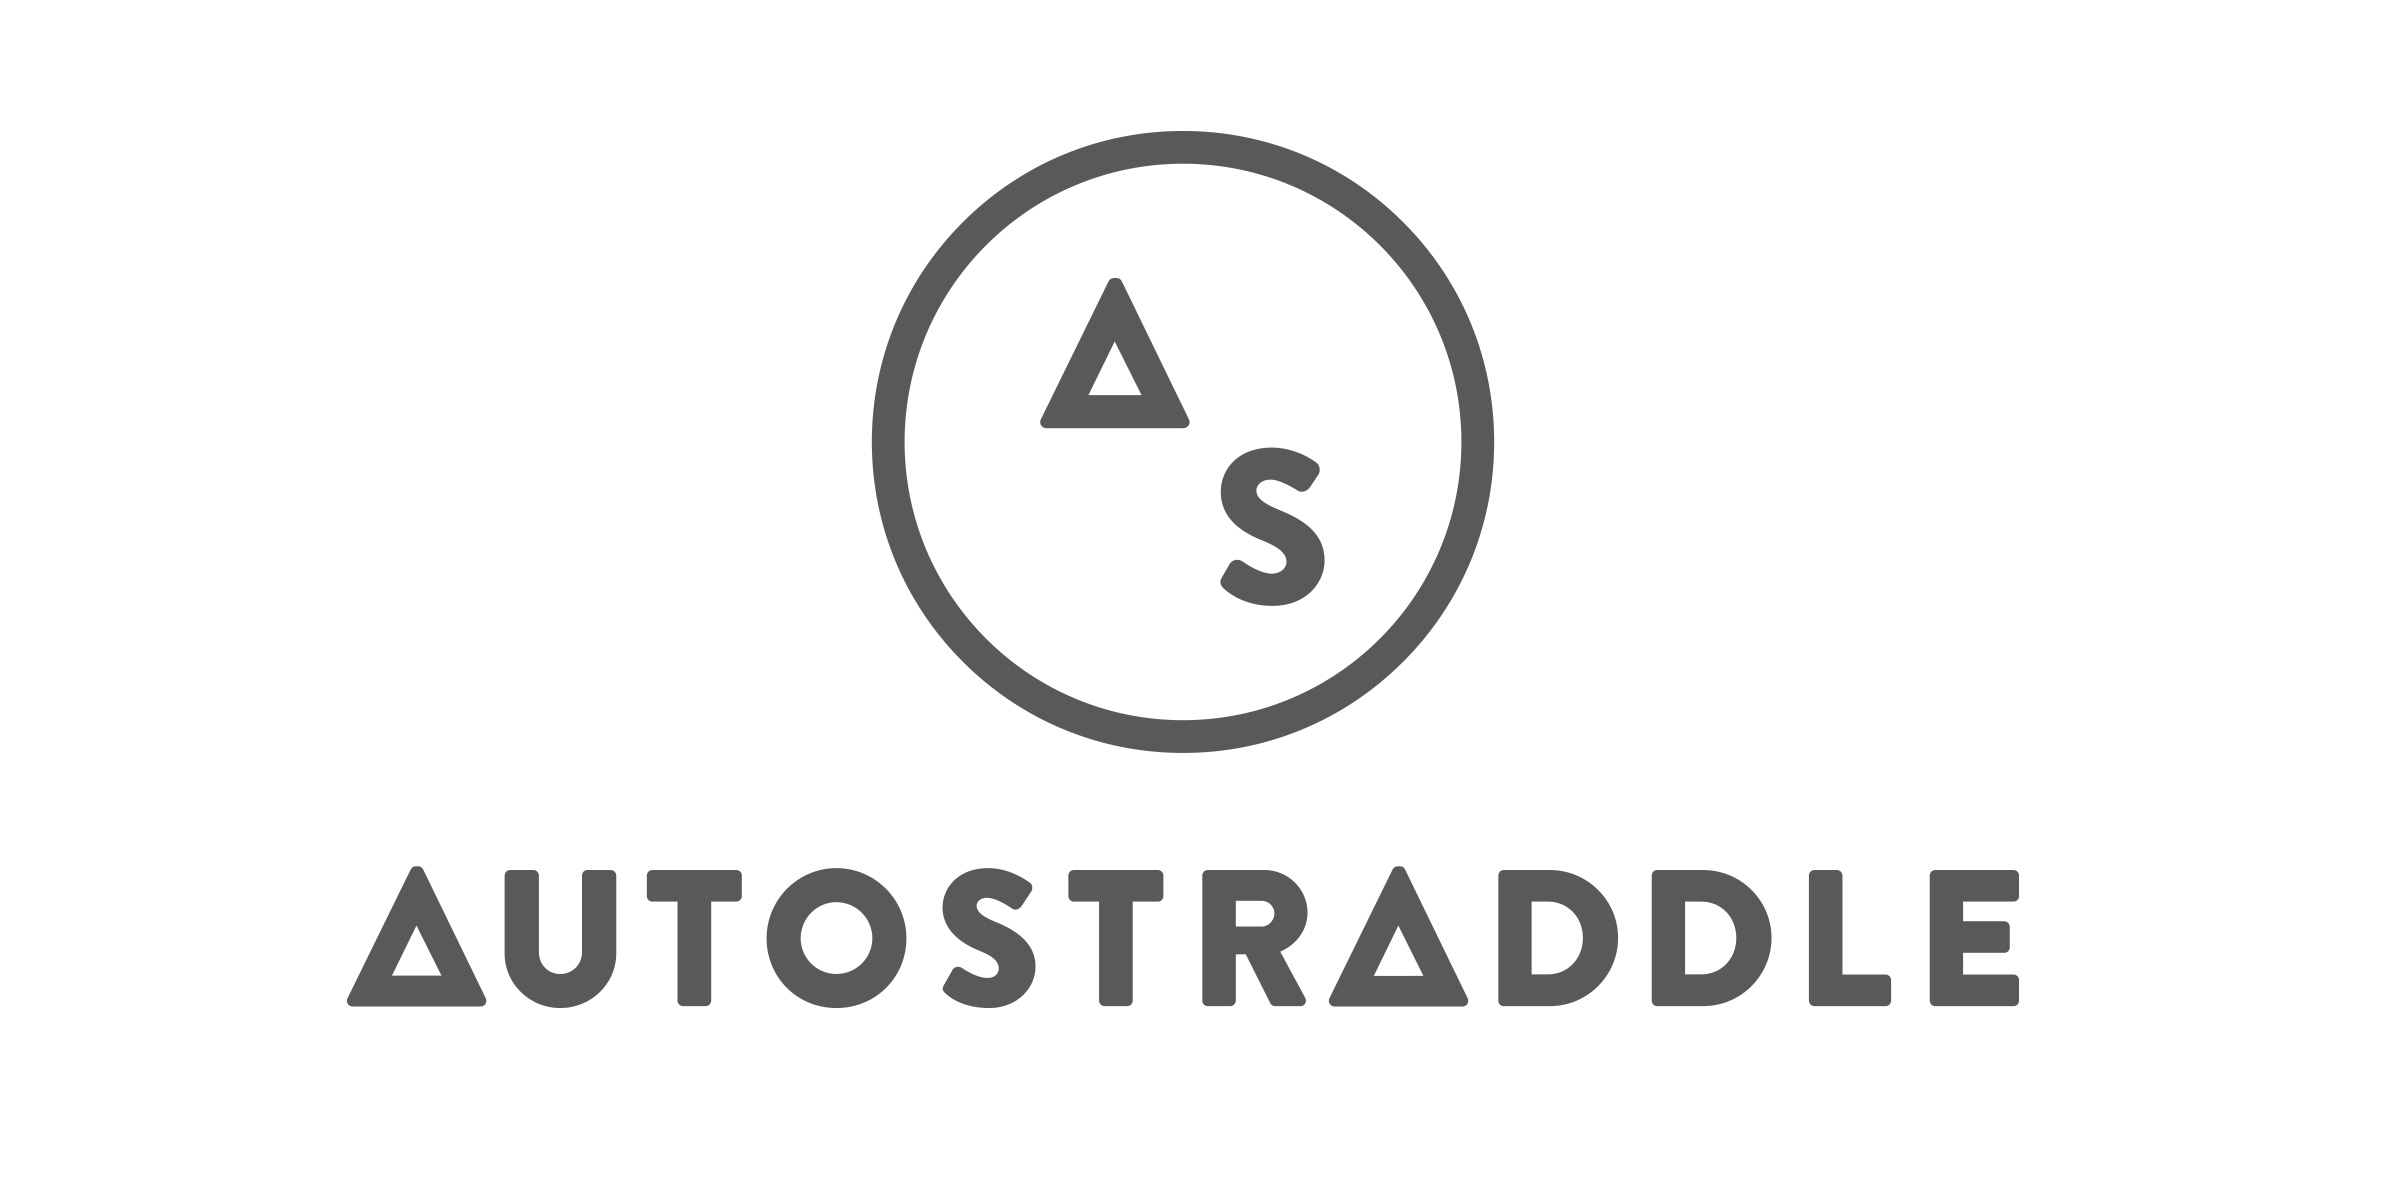 Autostraddle_logo_grey_highres.jpg